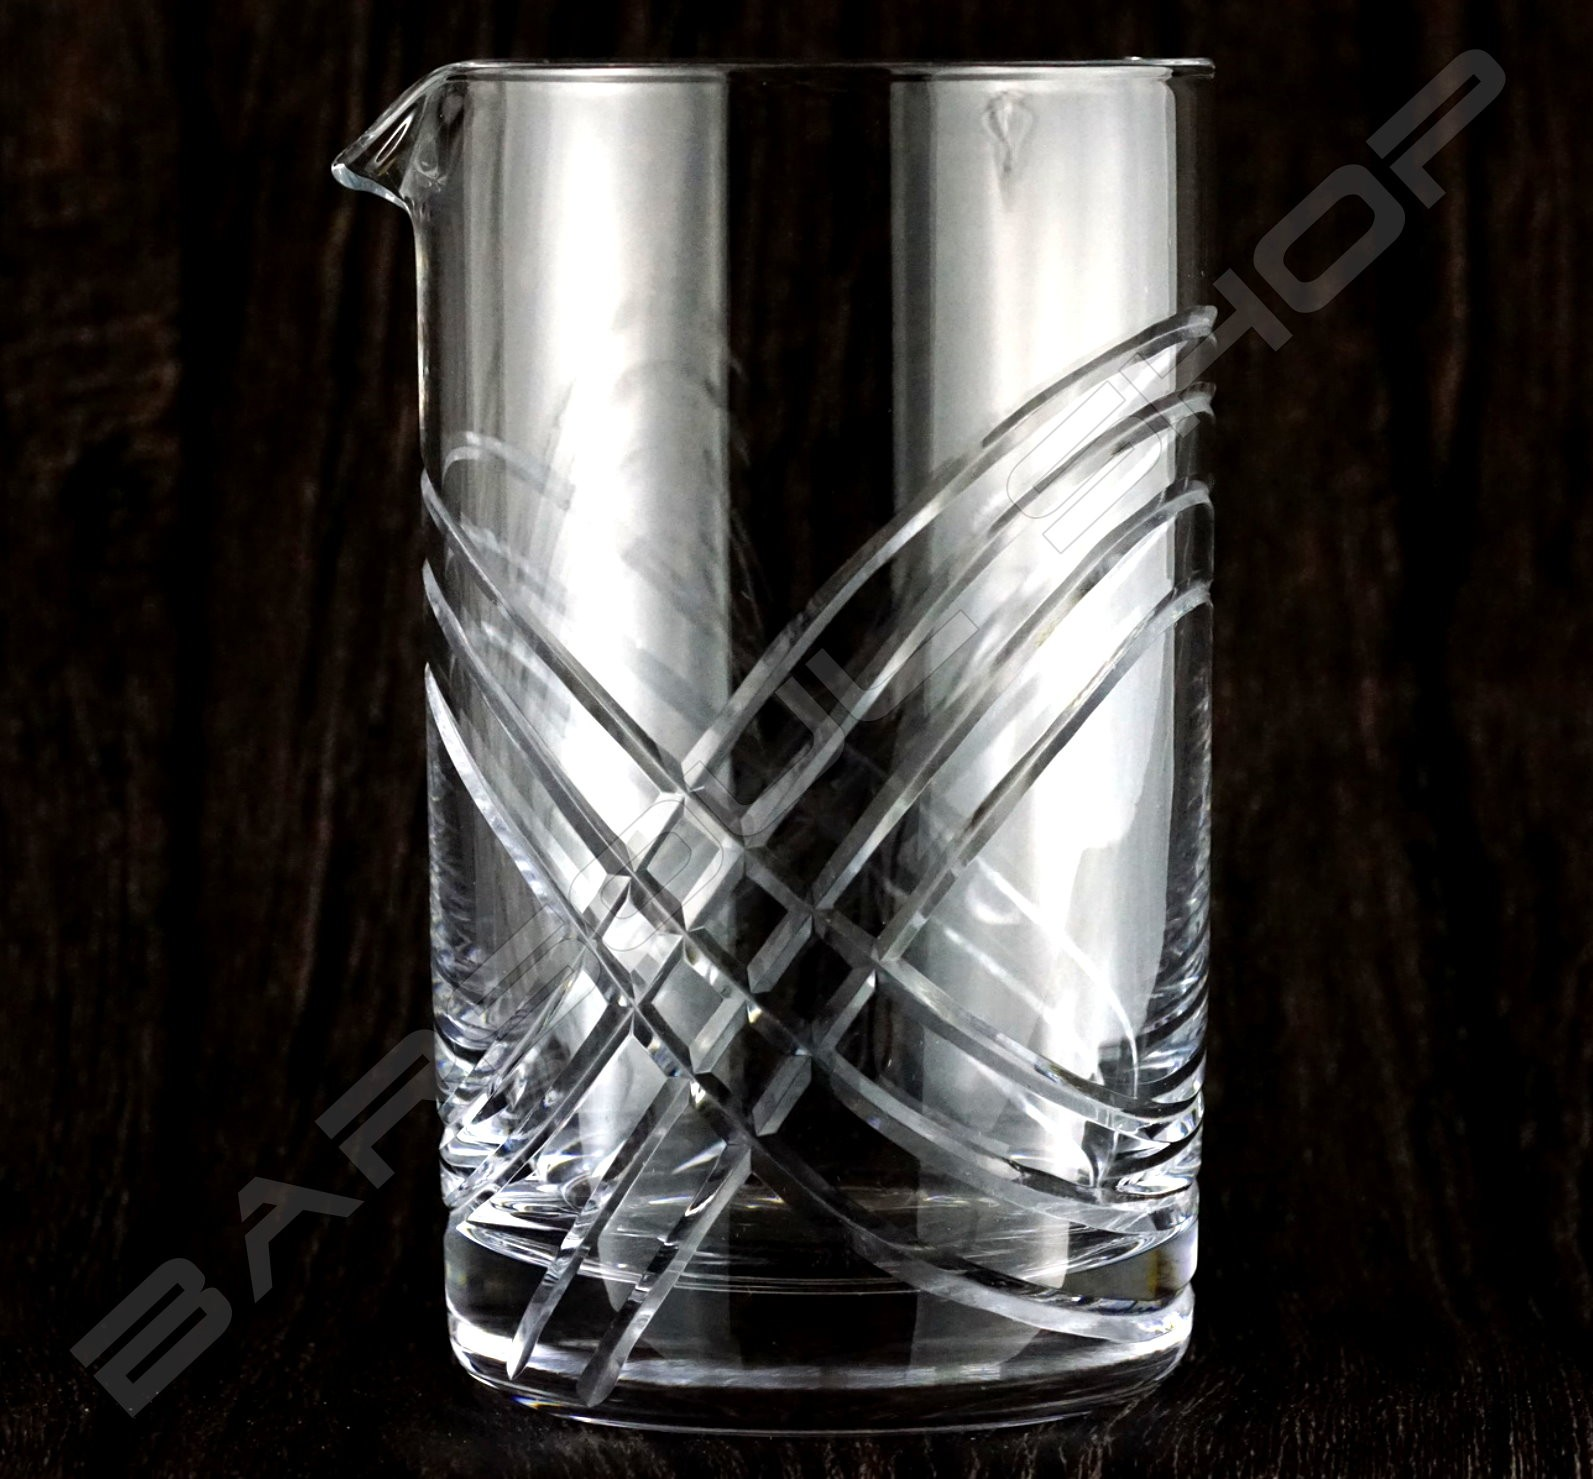 水晶攪拌杯 無極限款 Crystal mixing glass (unlimited) H15cm